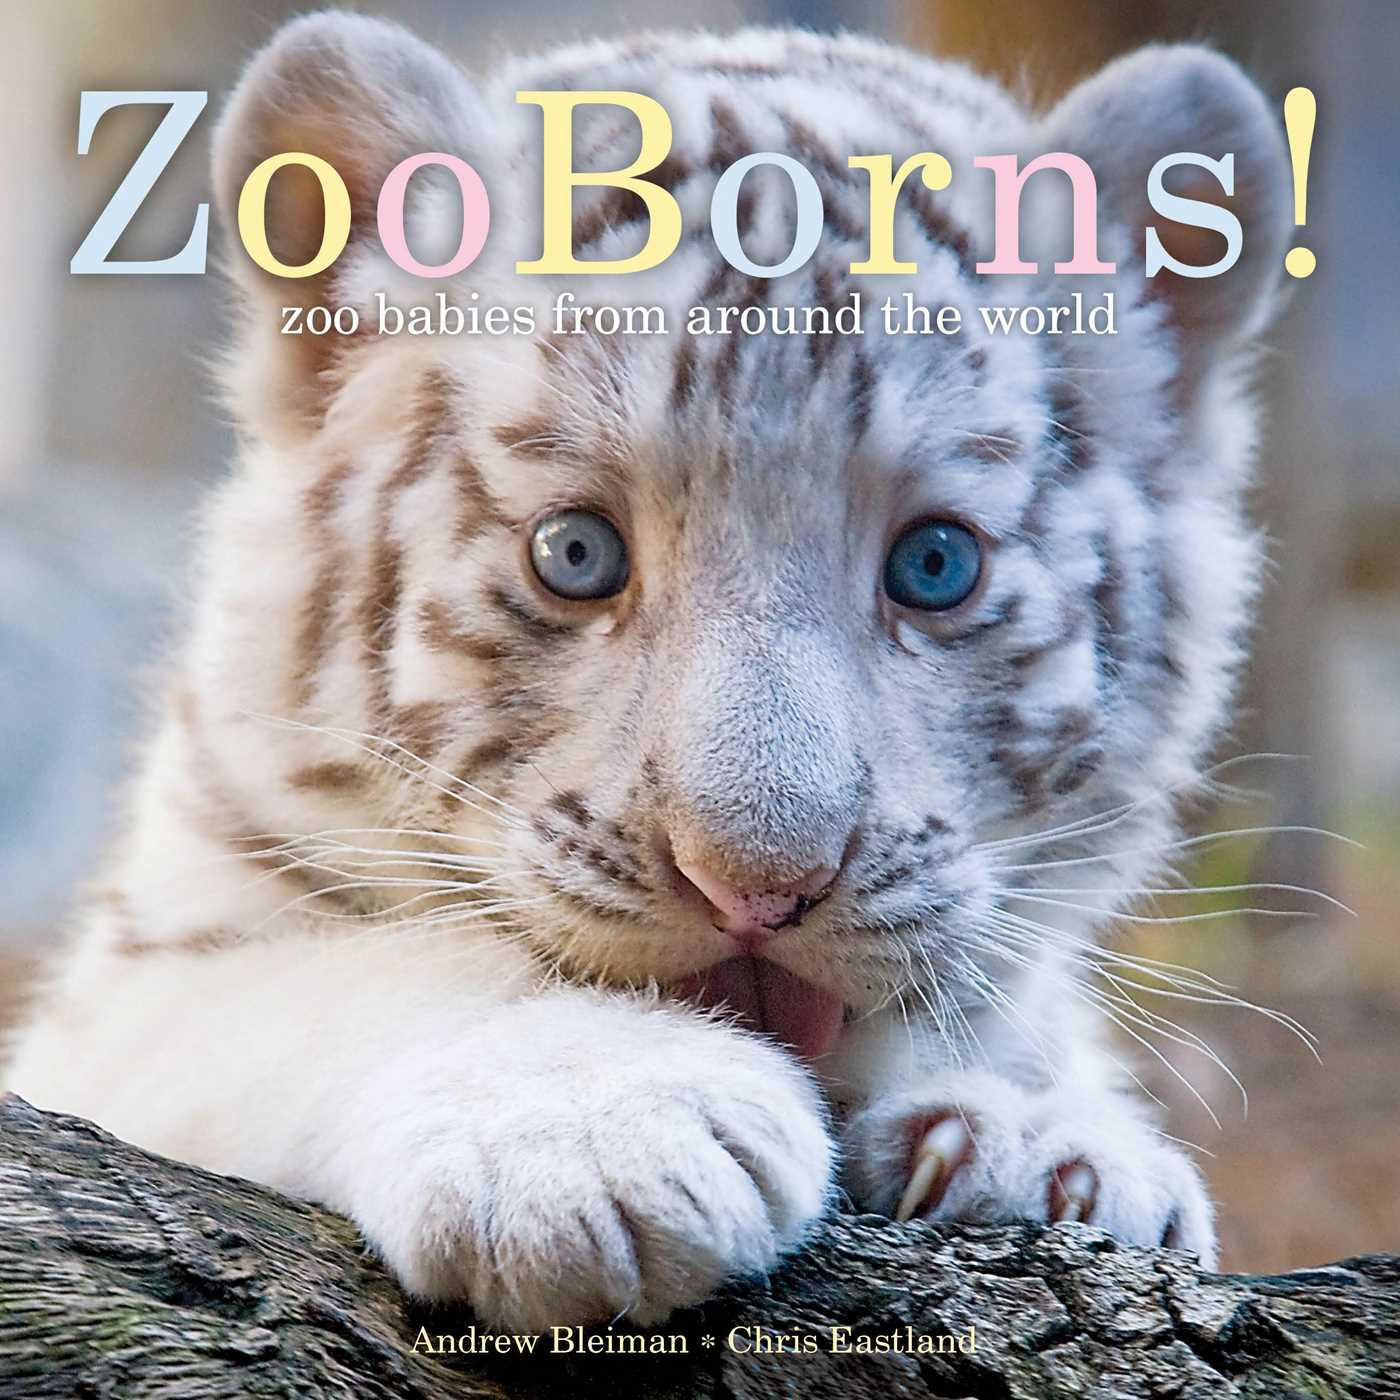 Zooborns 9781481447027 hr